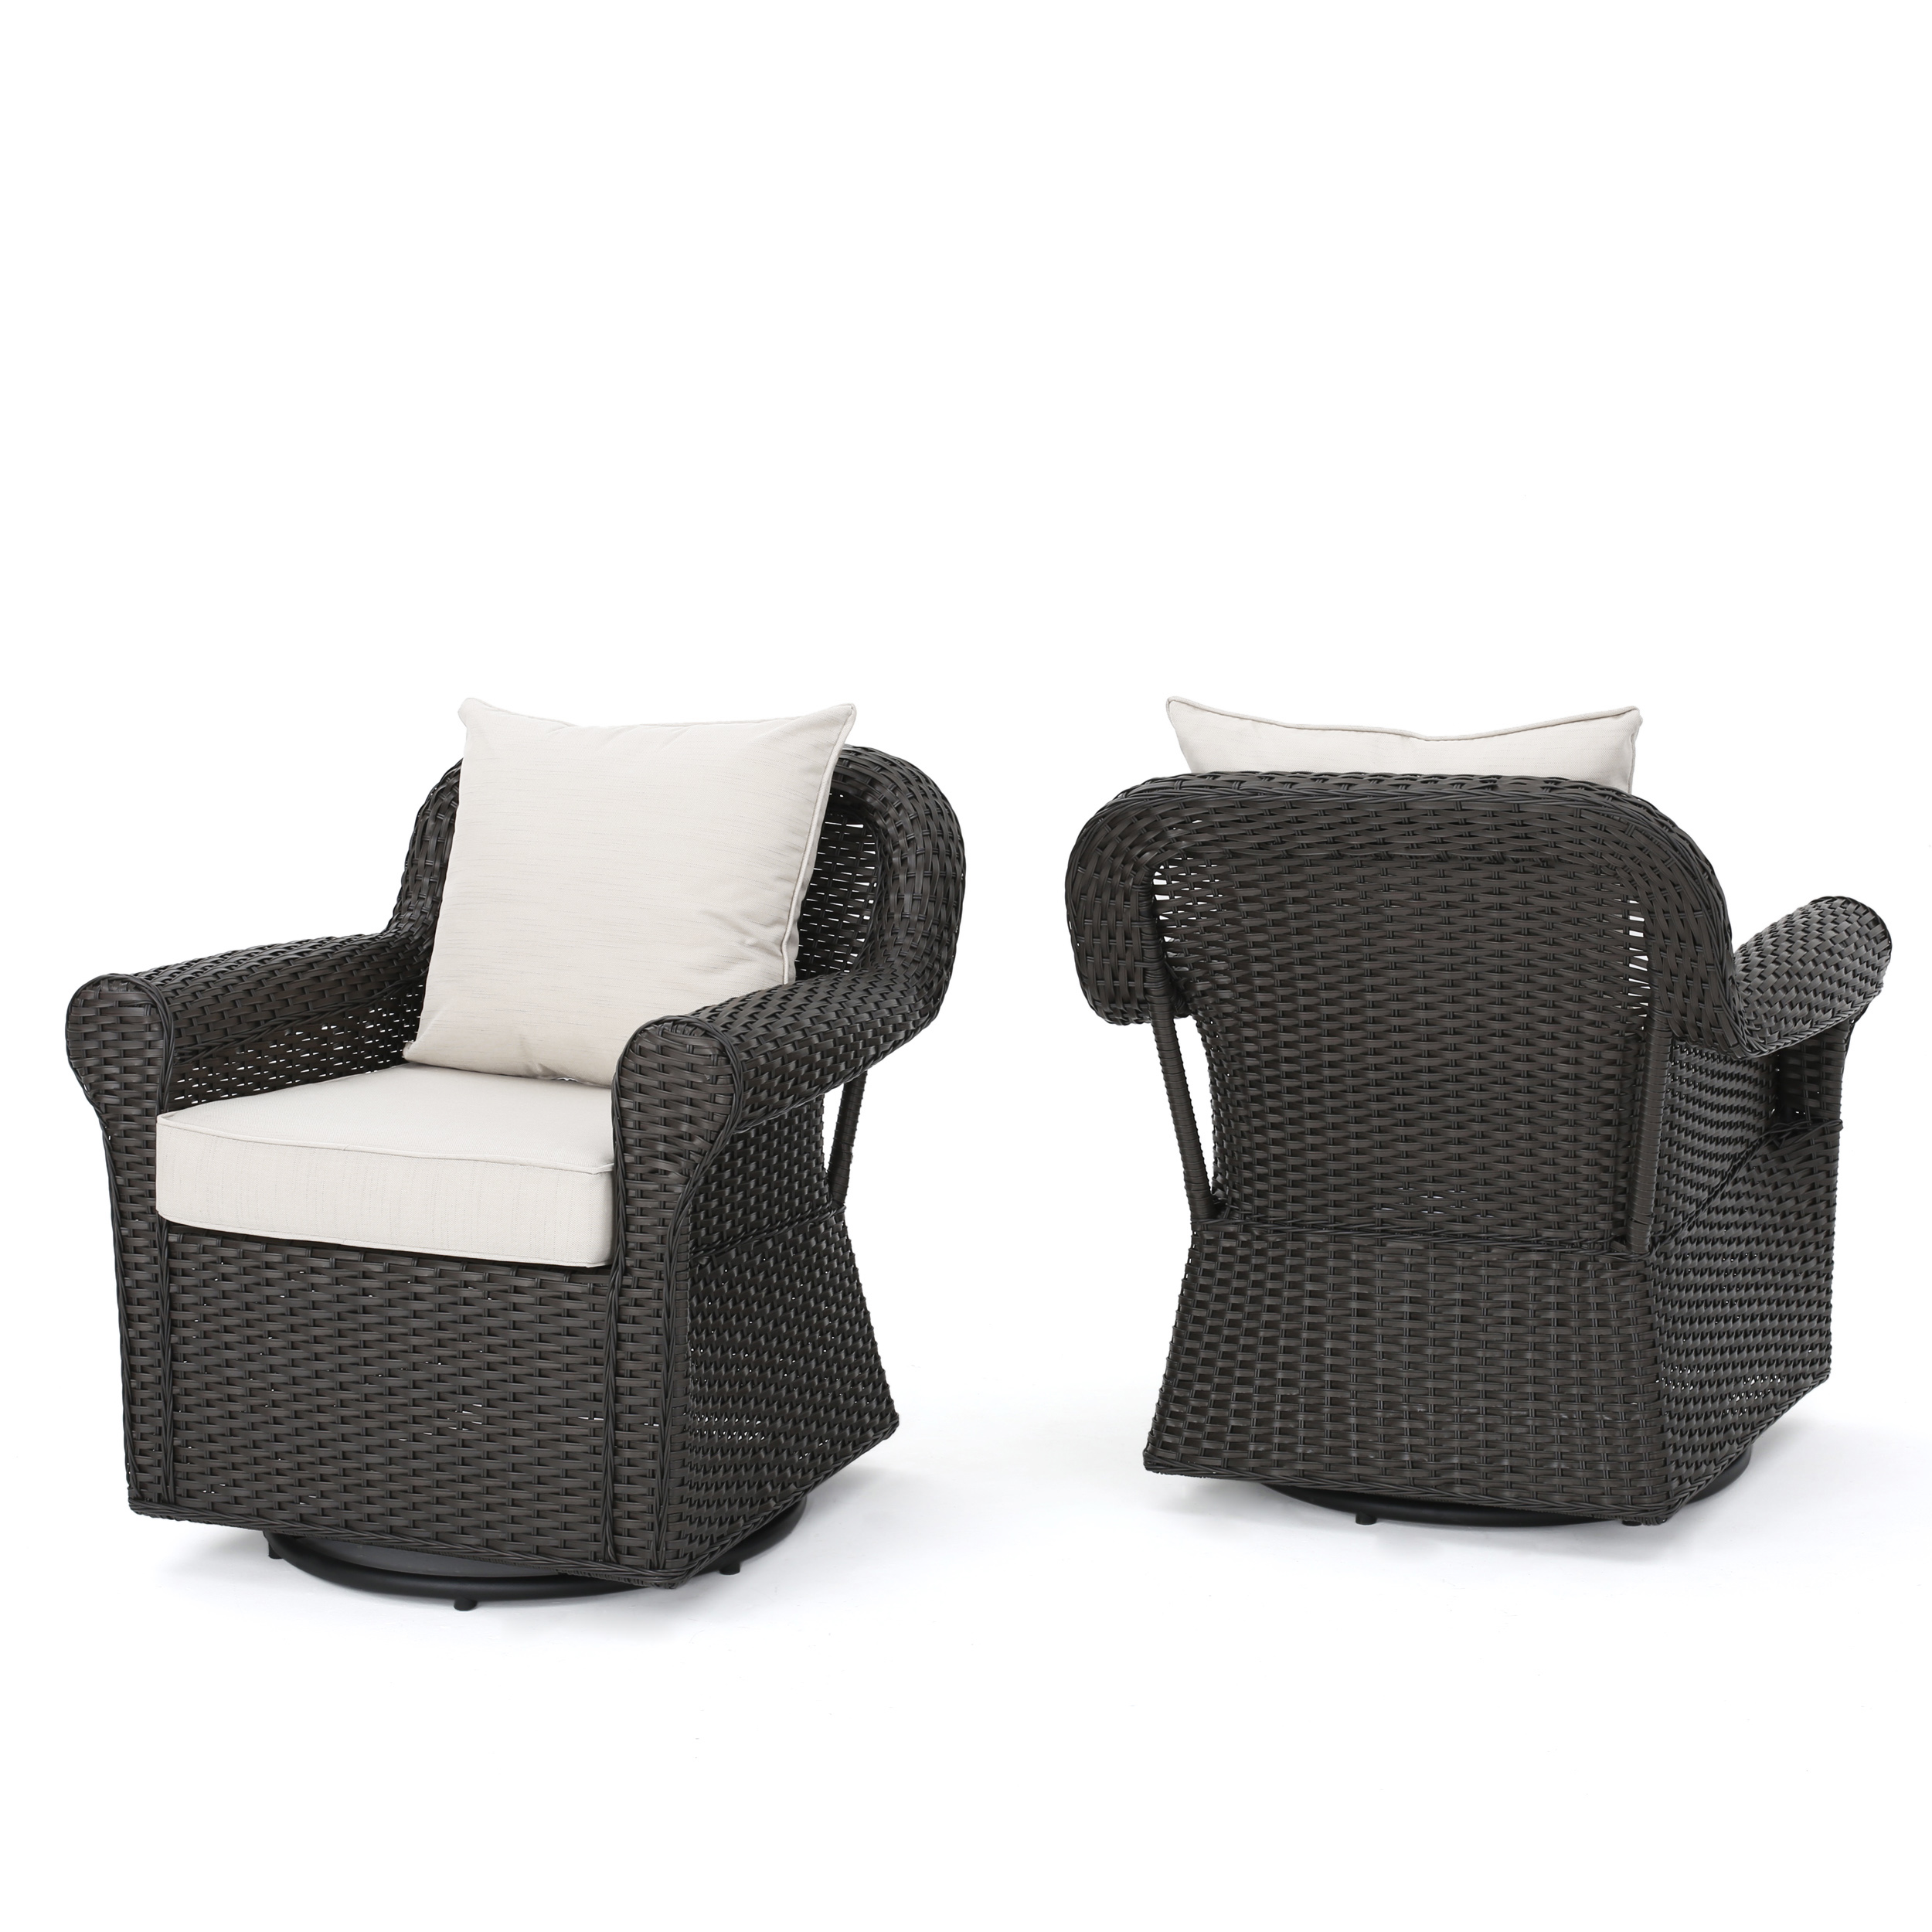 Admiral Outdoor Dark Brown Wicker Swivel Rocking Chair with Cushions, Set of 2, Beige by GDF Studio